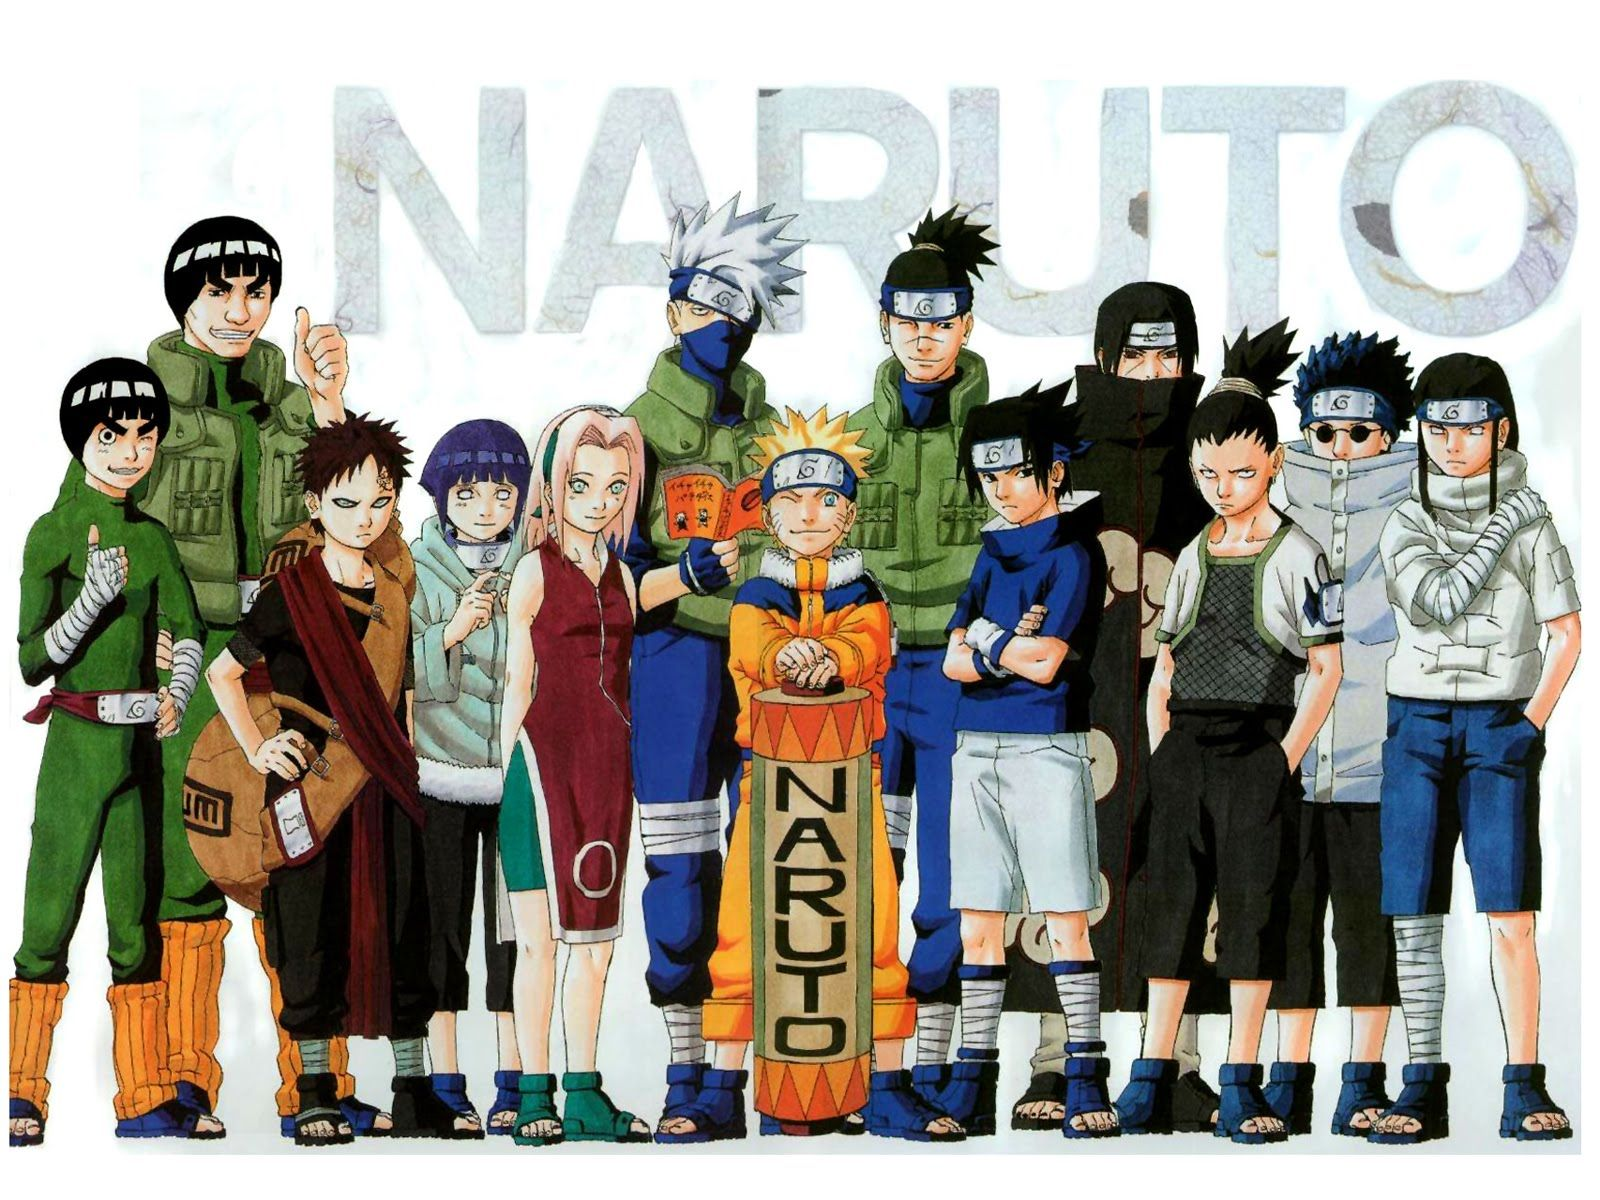 All Naruto Character Anime Wallpaper Naruto Characters Top Anime Series Naruto Shippuden Anime